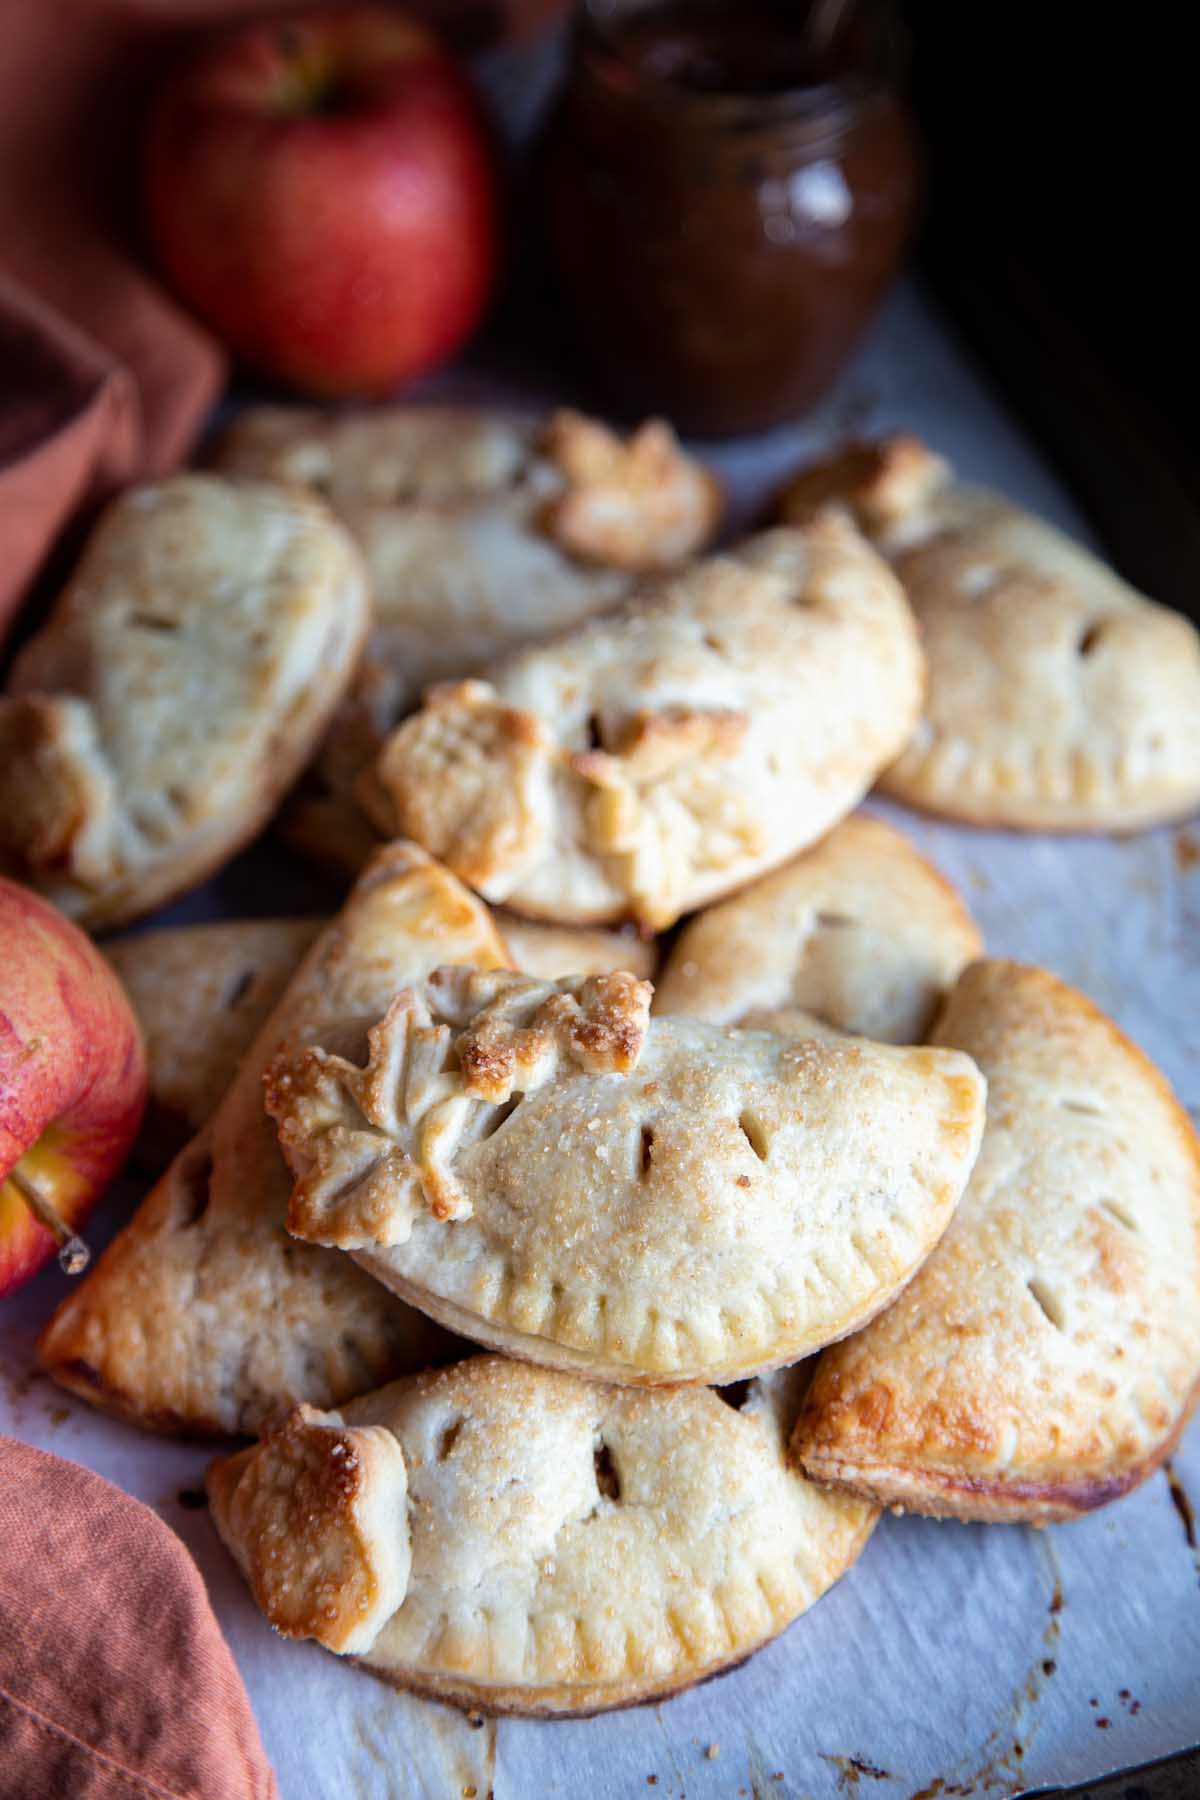 Apple hand pies piled on a baking sheet